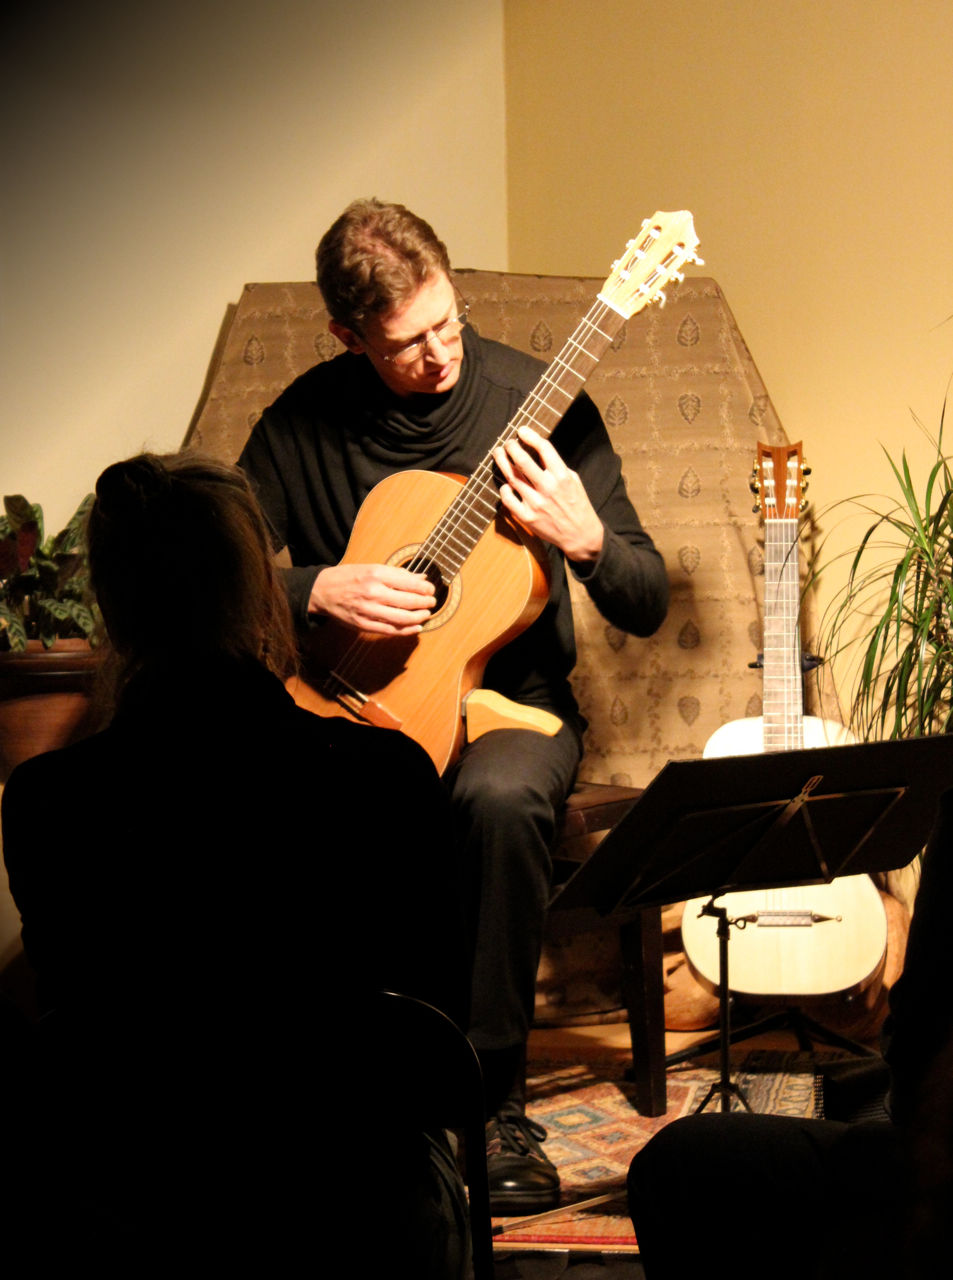 Bruce Paine playing a Rod Capper 'Prelude' student guitar